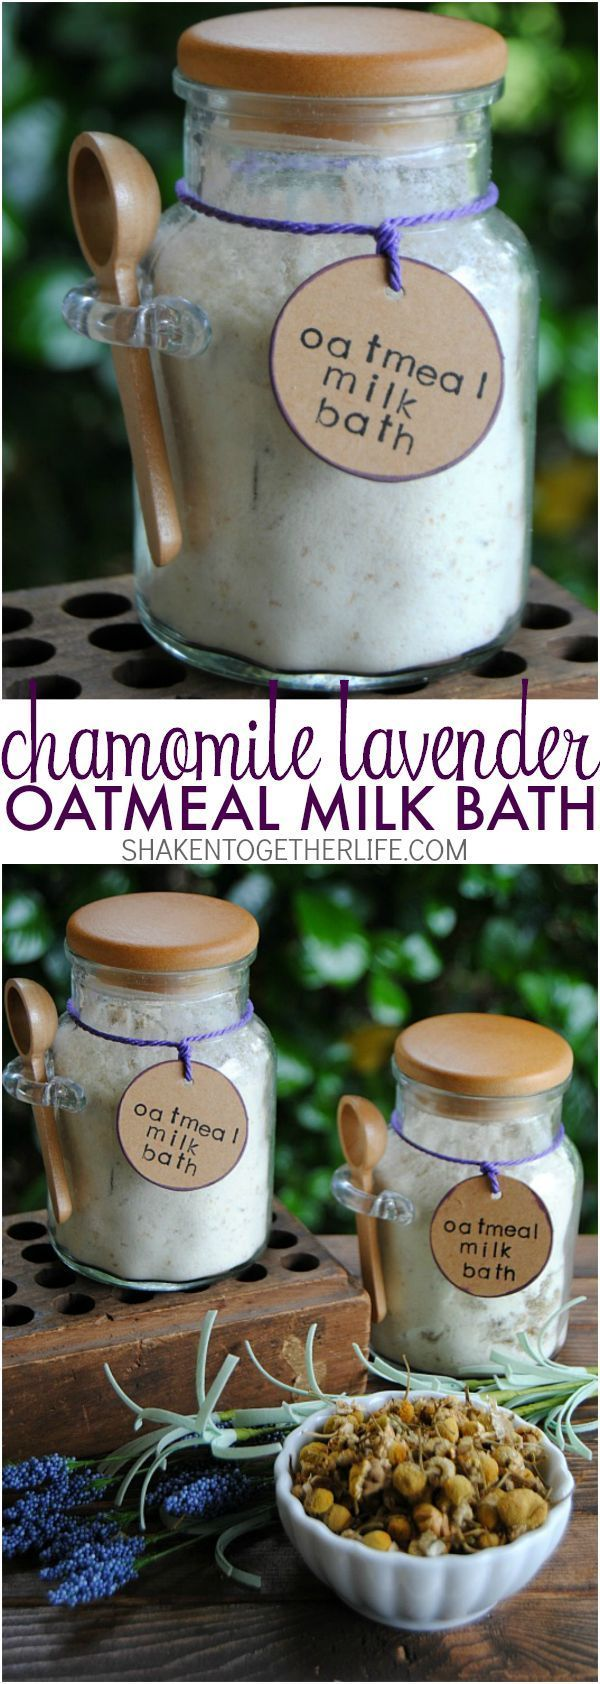 Chamomile Lavender Oatmeal Milk Bath - soothing and pampering and perfect for gi...